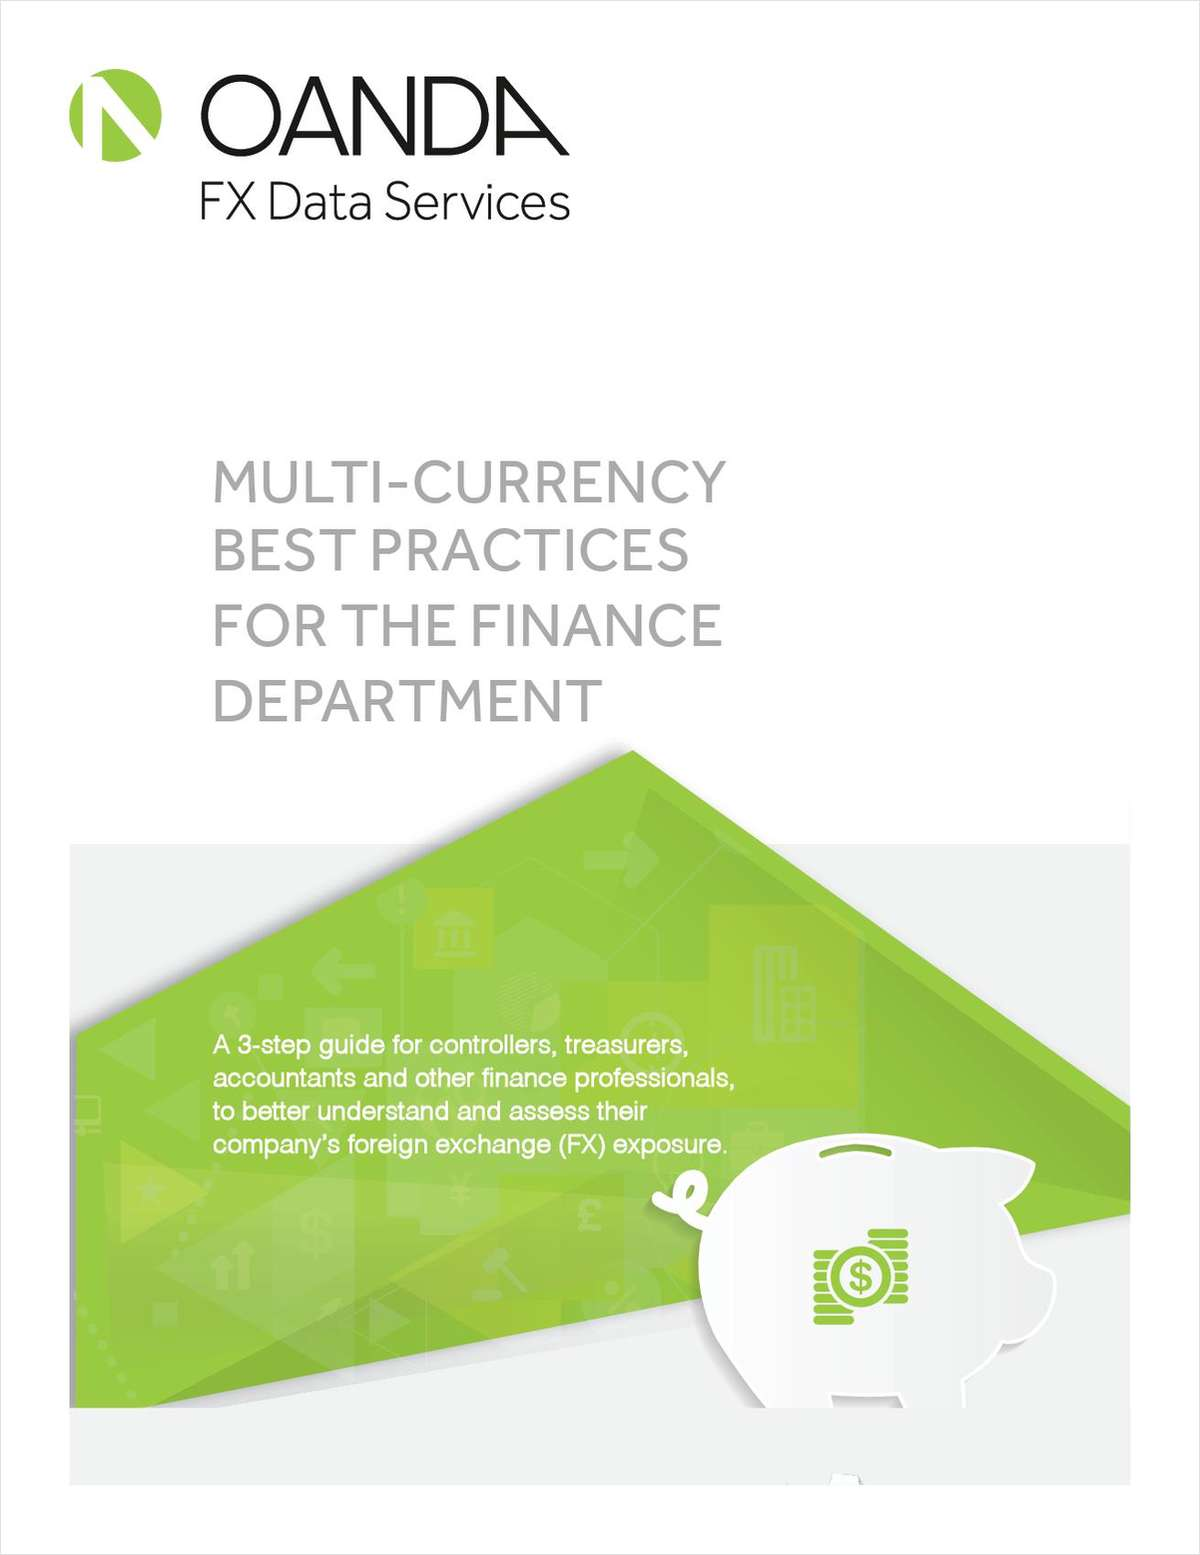 Multi-Currency Best Practices for the Finance Department